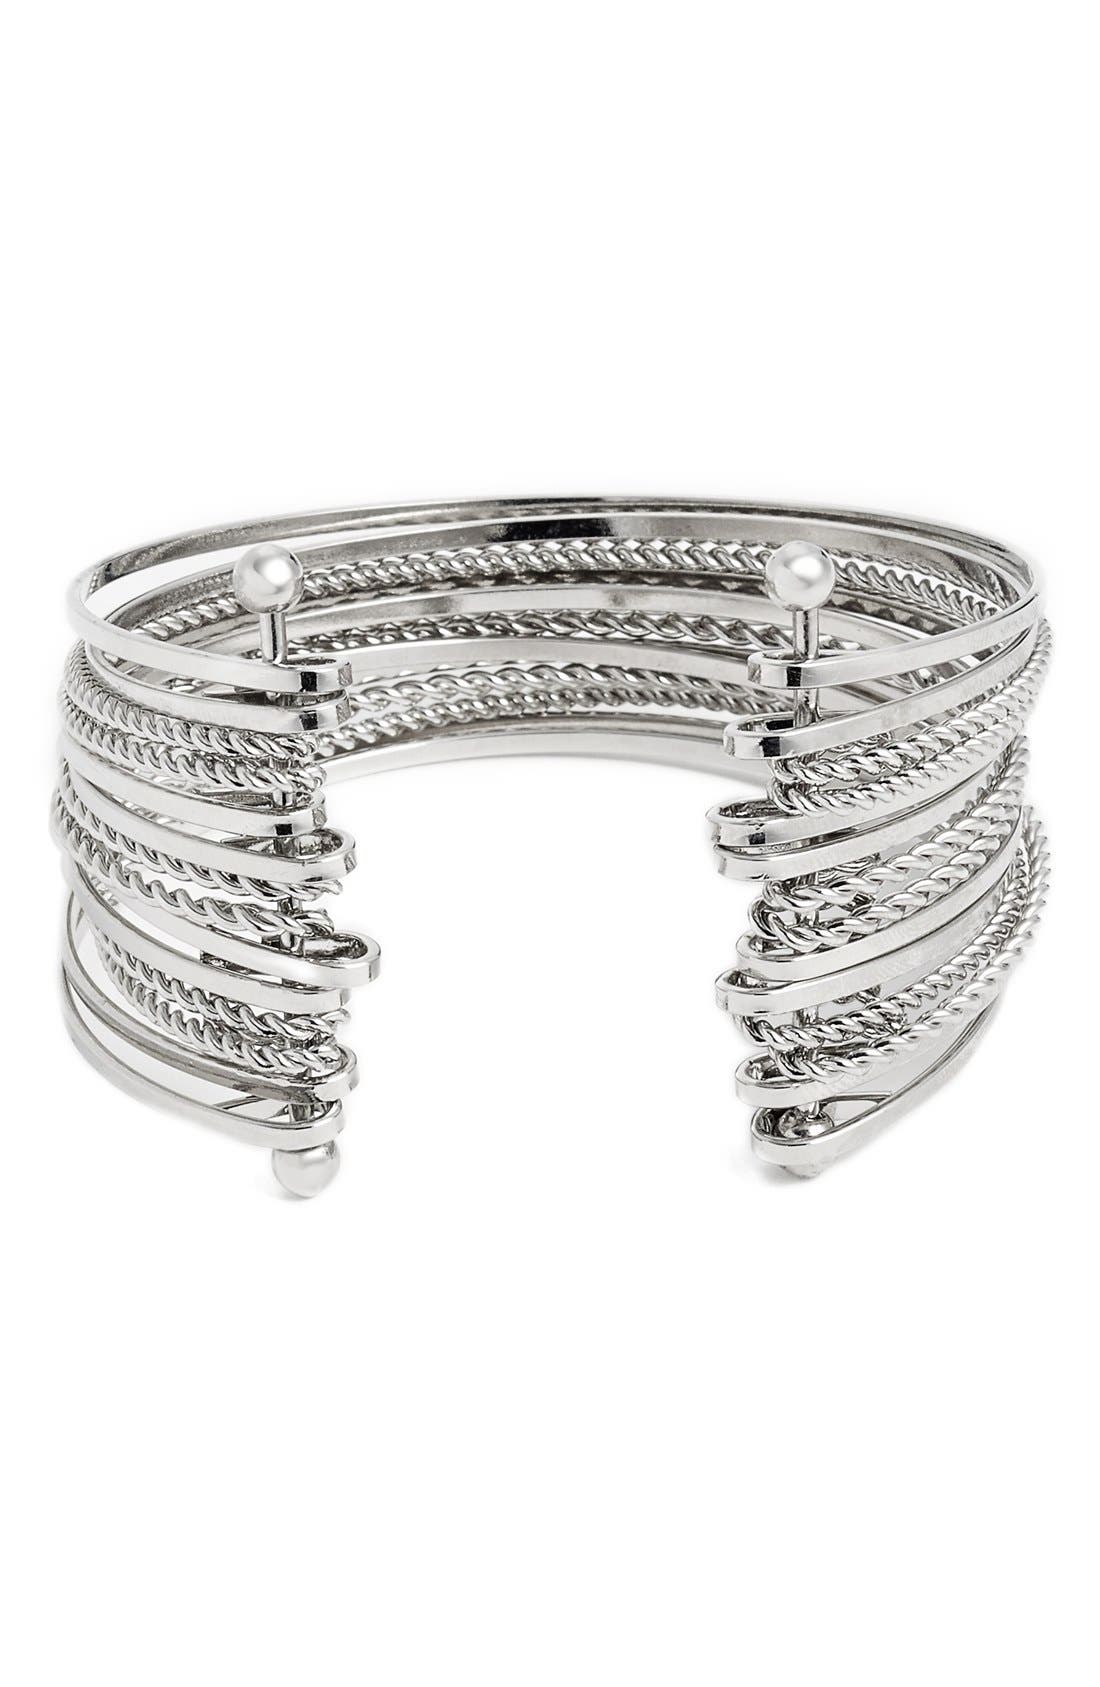 Alternate Image 1 Selected - BP. Twisted Chain Multi Row Cuff Bracelet